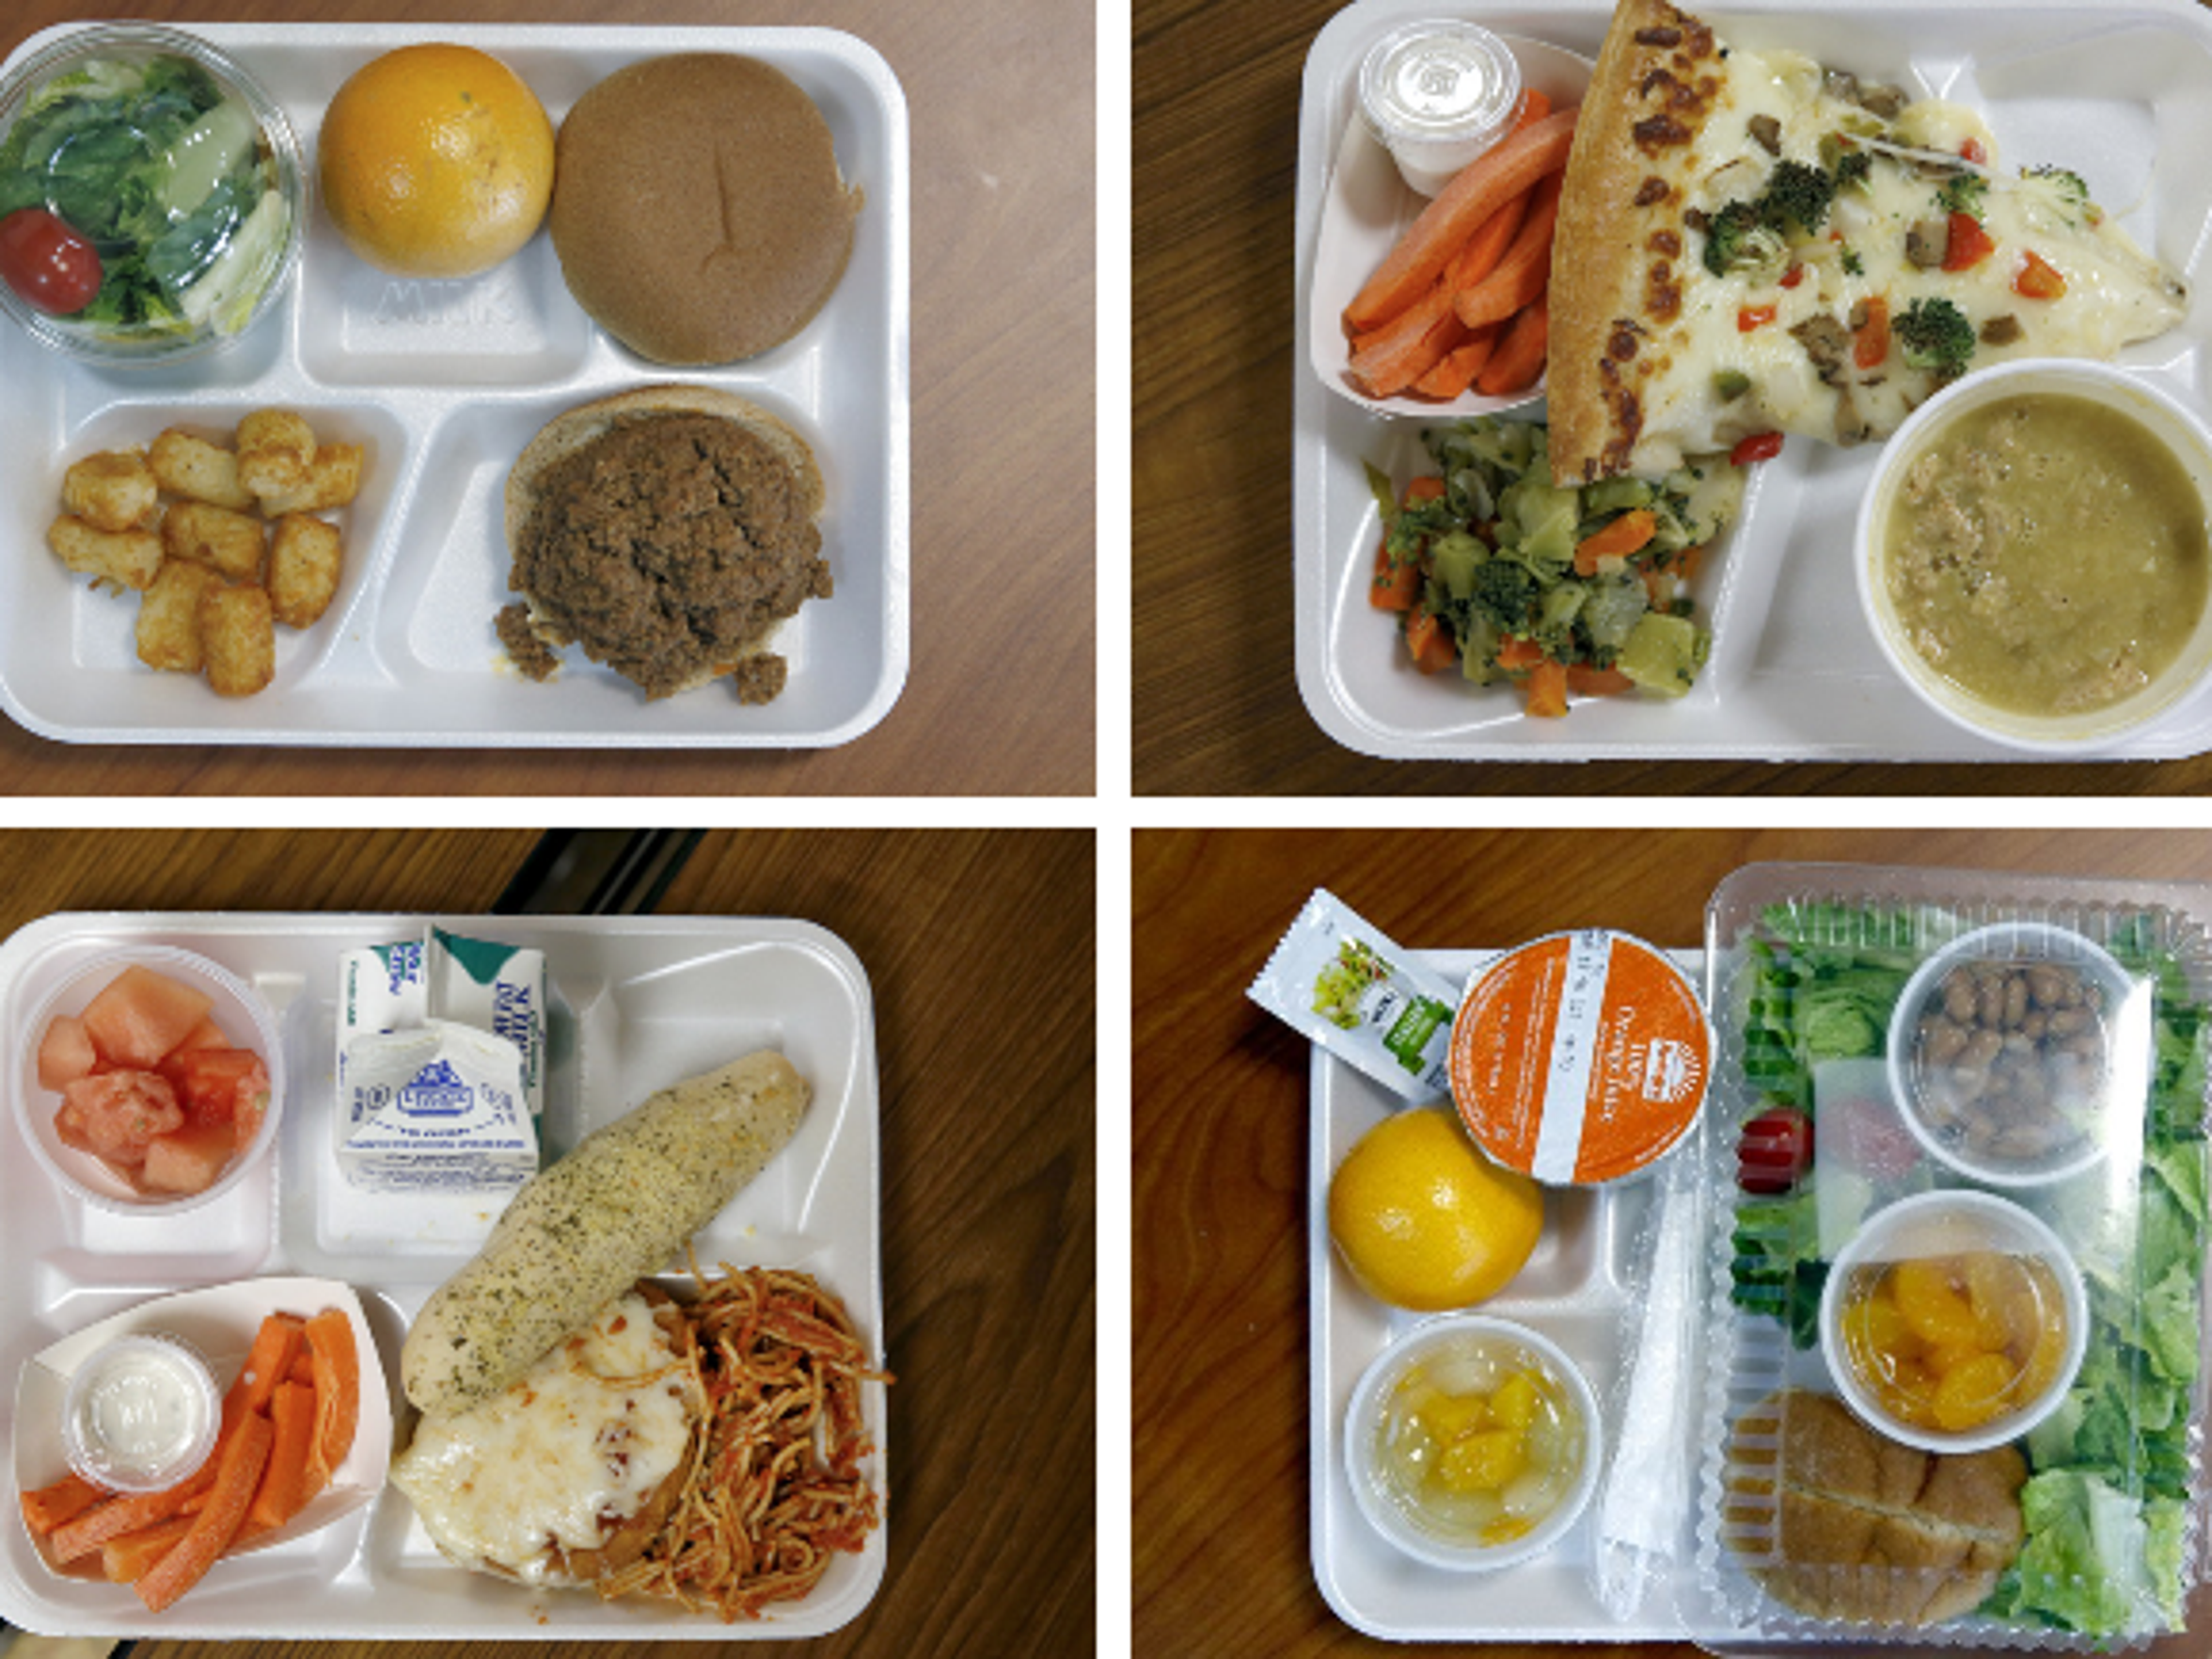 A sampling of school lunches from different schools